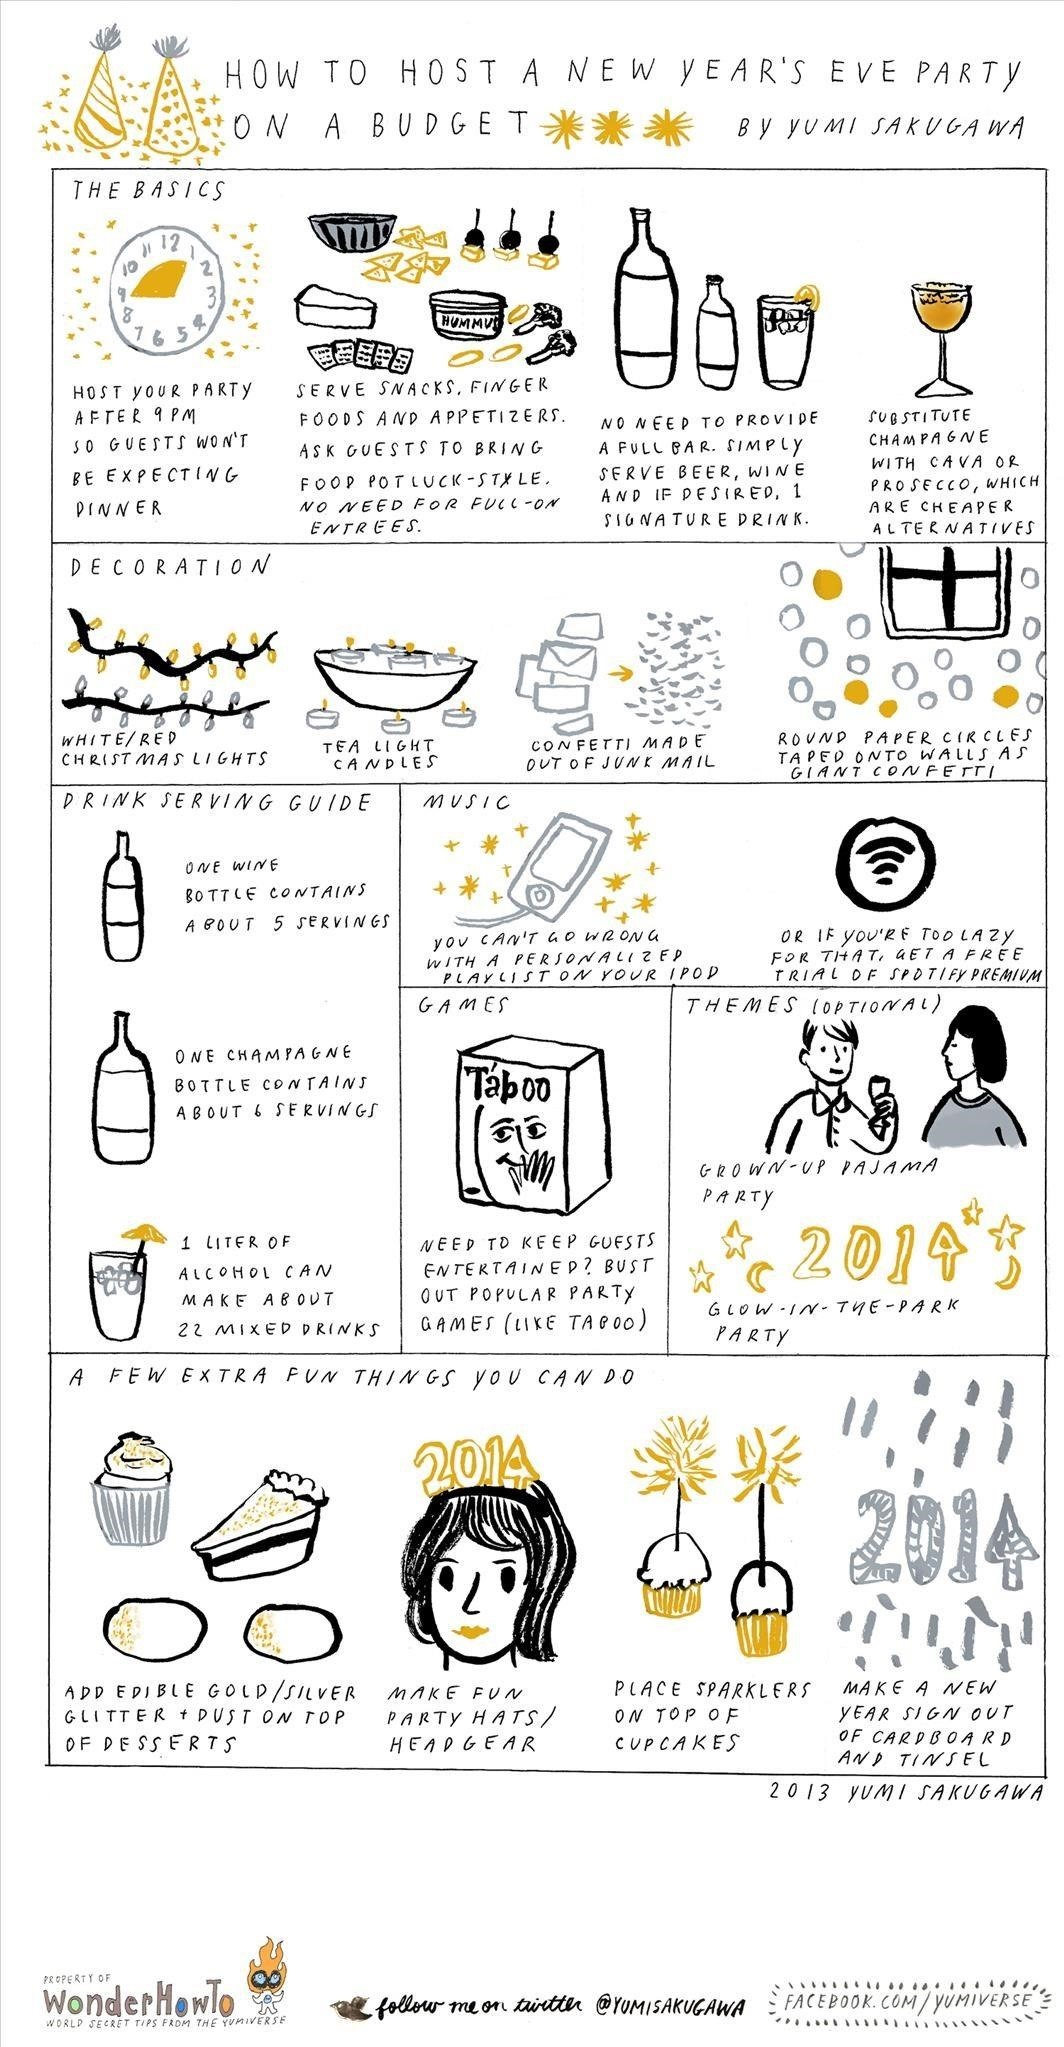 How to Host a New Year's Eve Party on a Budget